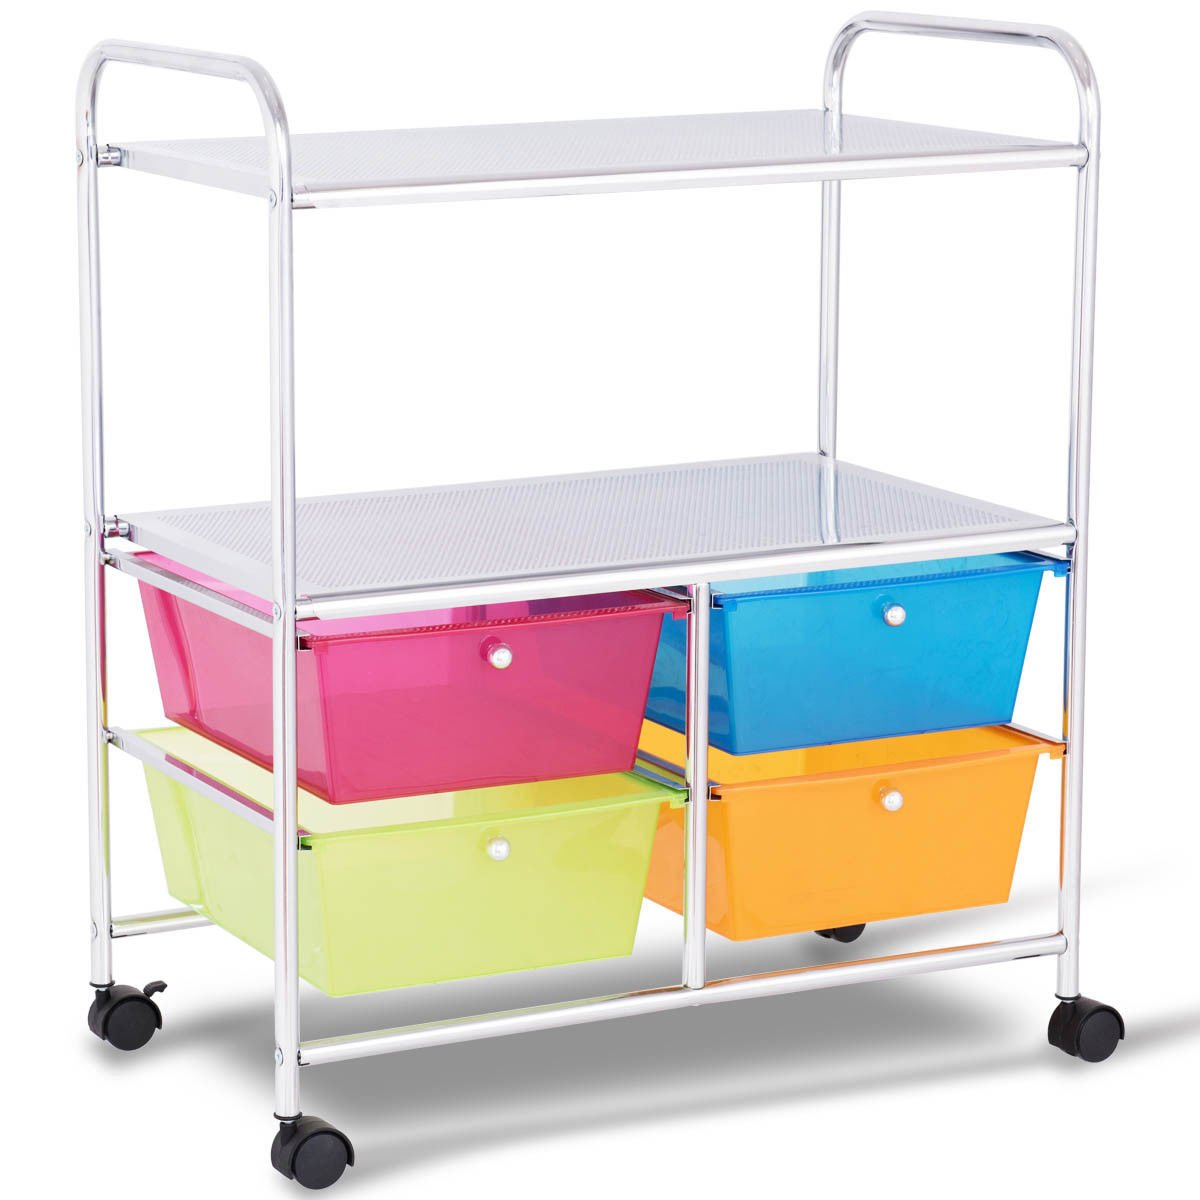 Giantex Rolling Storage Cart w/ 4 Drawers 2 Shelves Metal Rack Shelf Home Office School Beauty Salon Utility Organizer Cart with Wheels (Blue Green Orange & Red) by Giantex